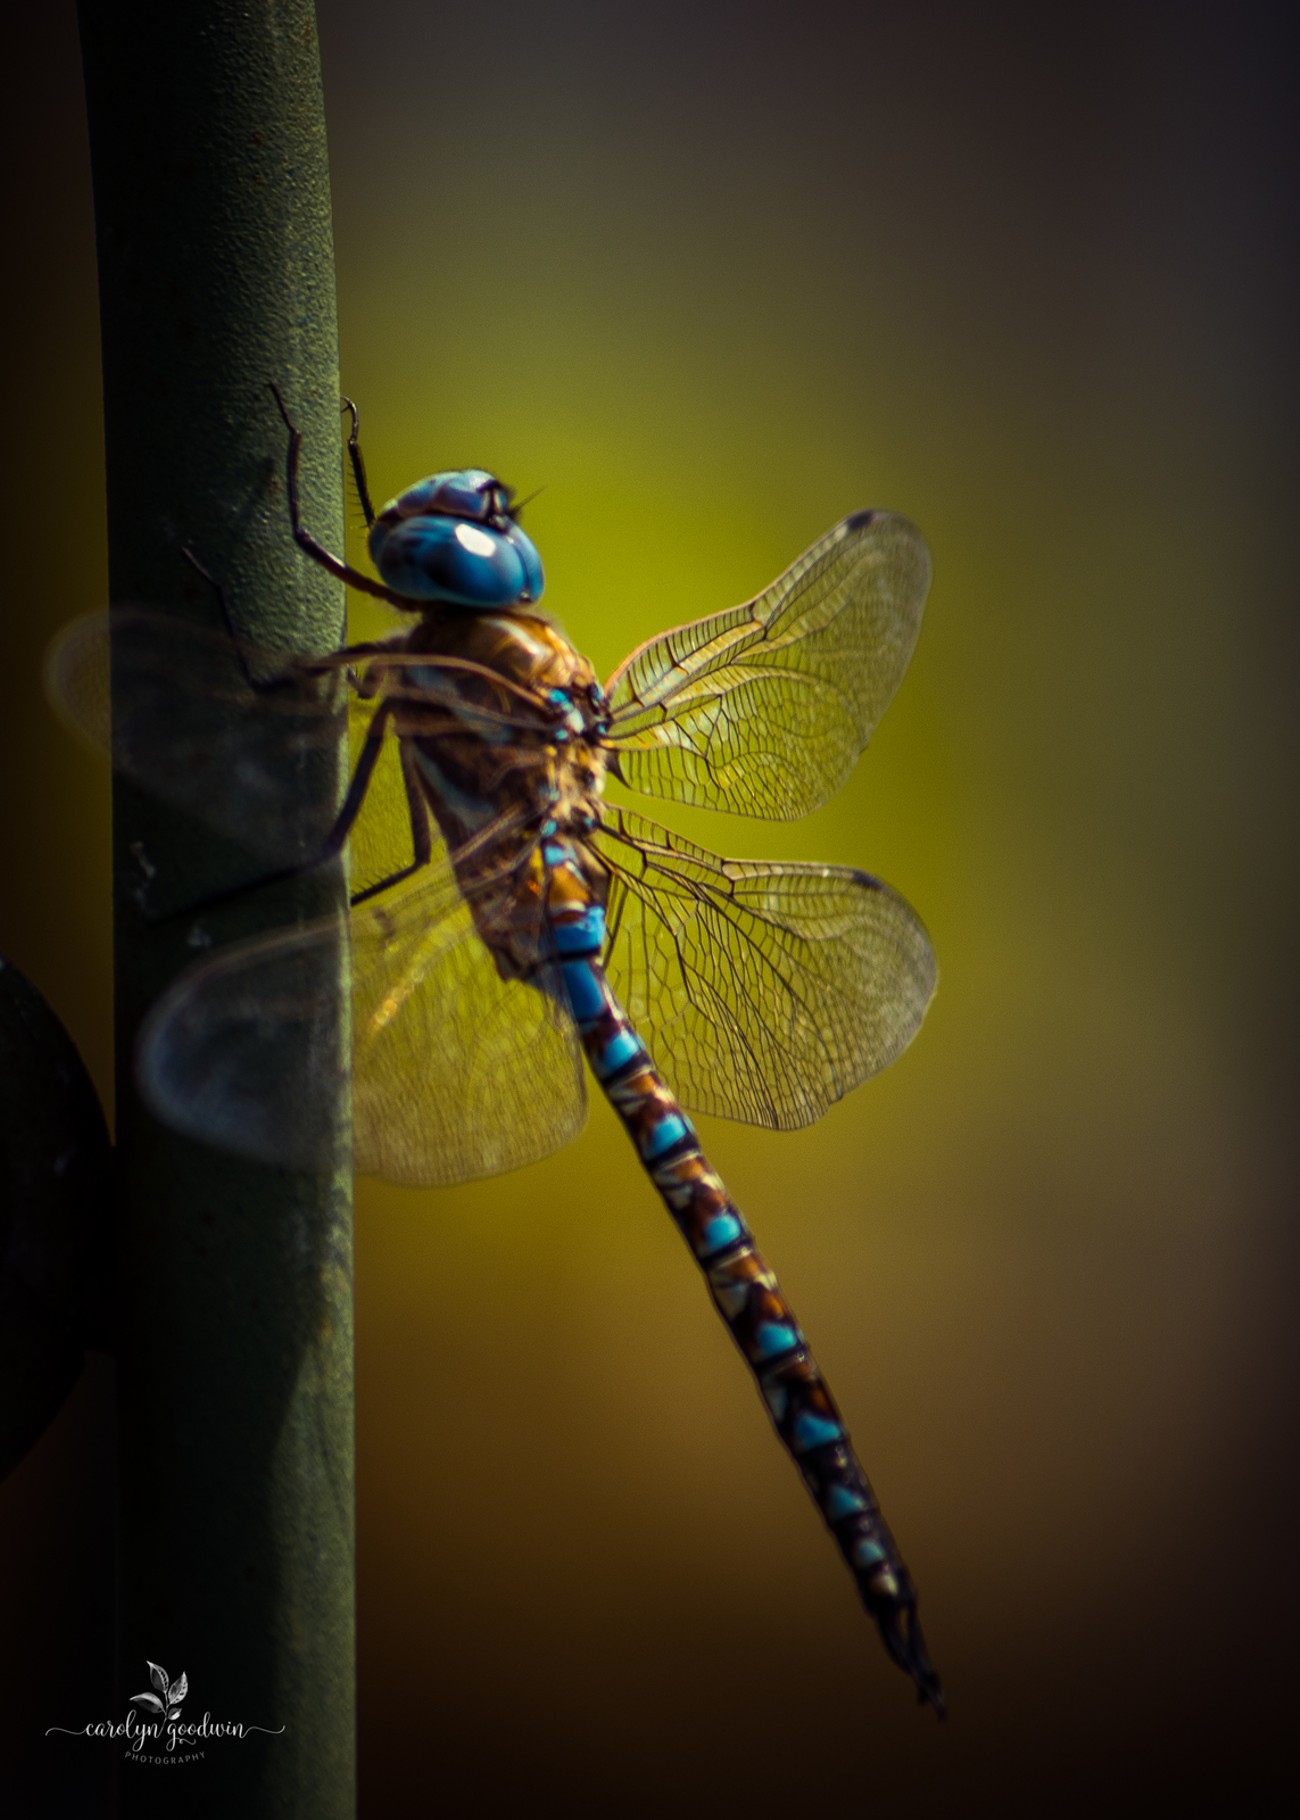 The Blue-Eyed Darner Dragonfly was passing by the hummingbird feeder and decided to take a pause and rest those beautiful wings.  I couldn't have been more thrilled with the opportunity to not only photograph this beautiful creature but also to truly appreciate the beauty.